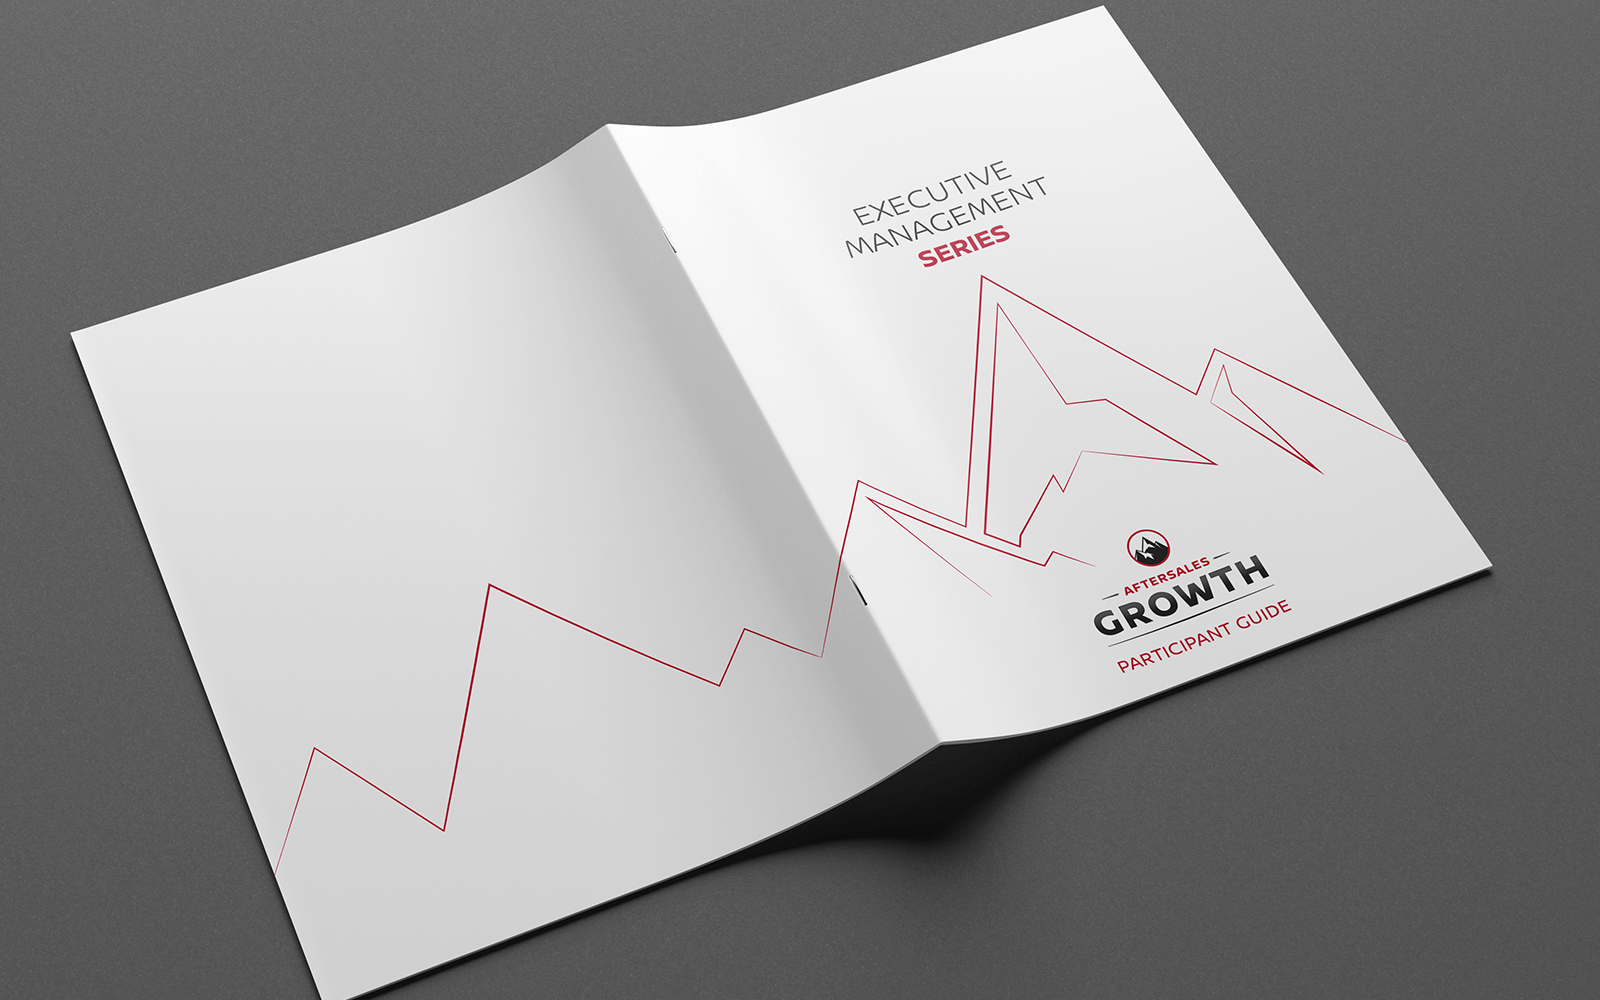 Participant guide design with custom visual treatment